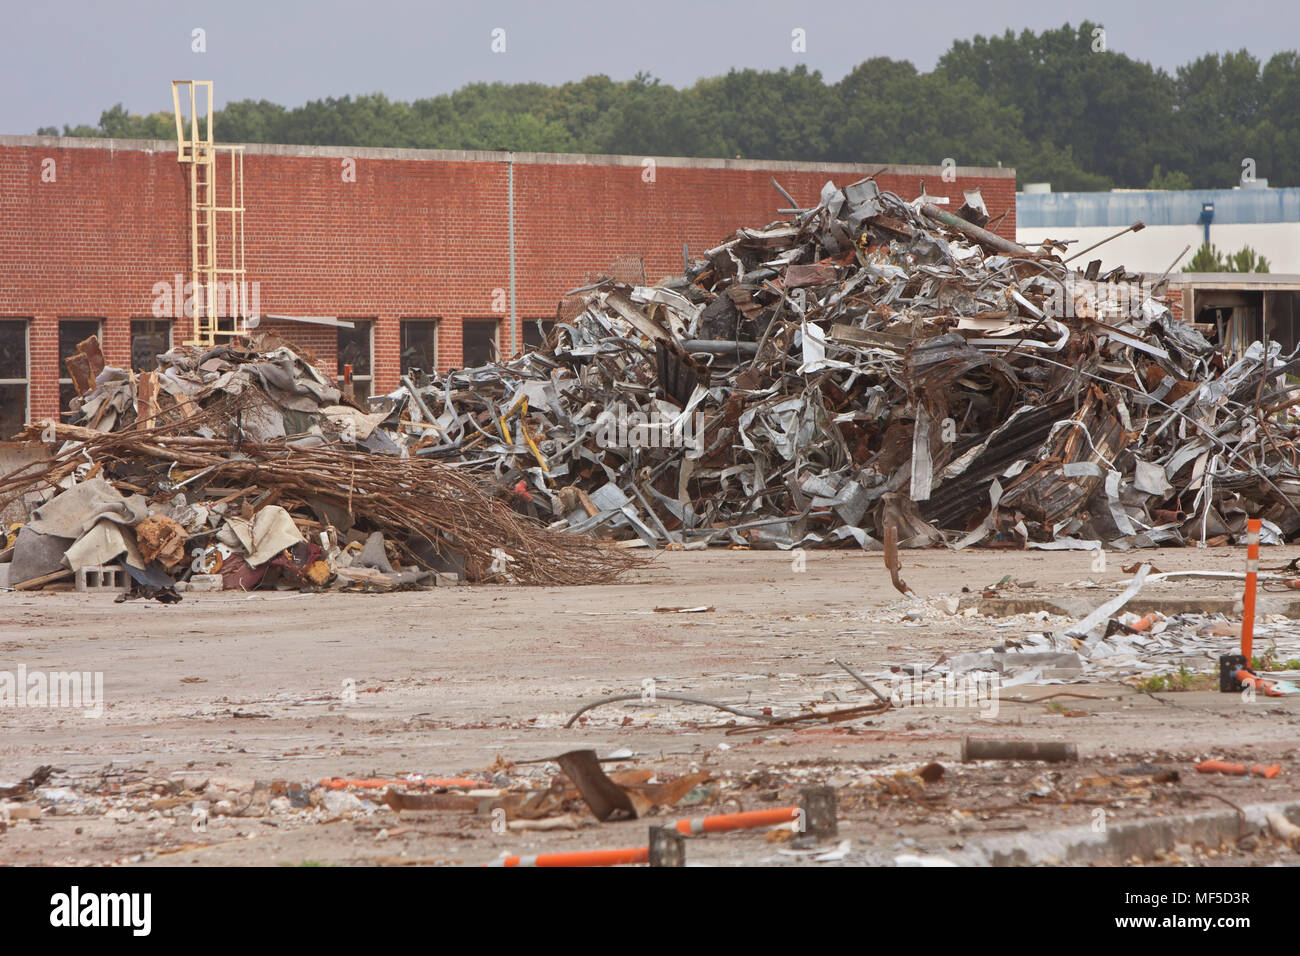 Debris piles of twisted metal and junk are stacked high at the demolition site of an auto assembly plant - Stock Image